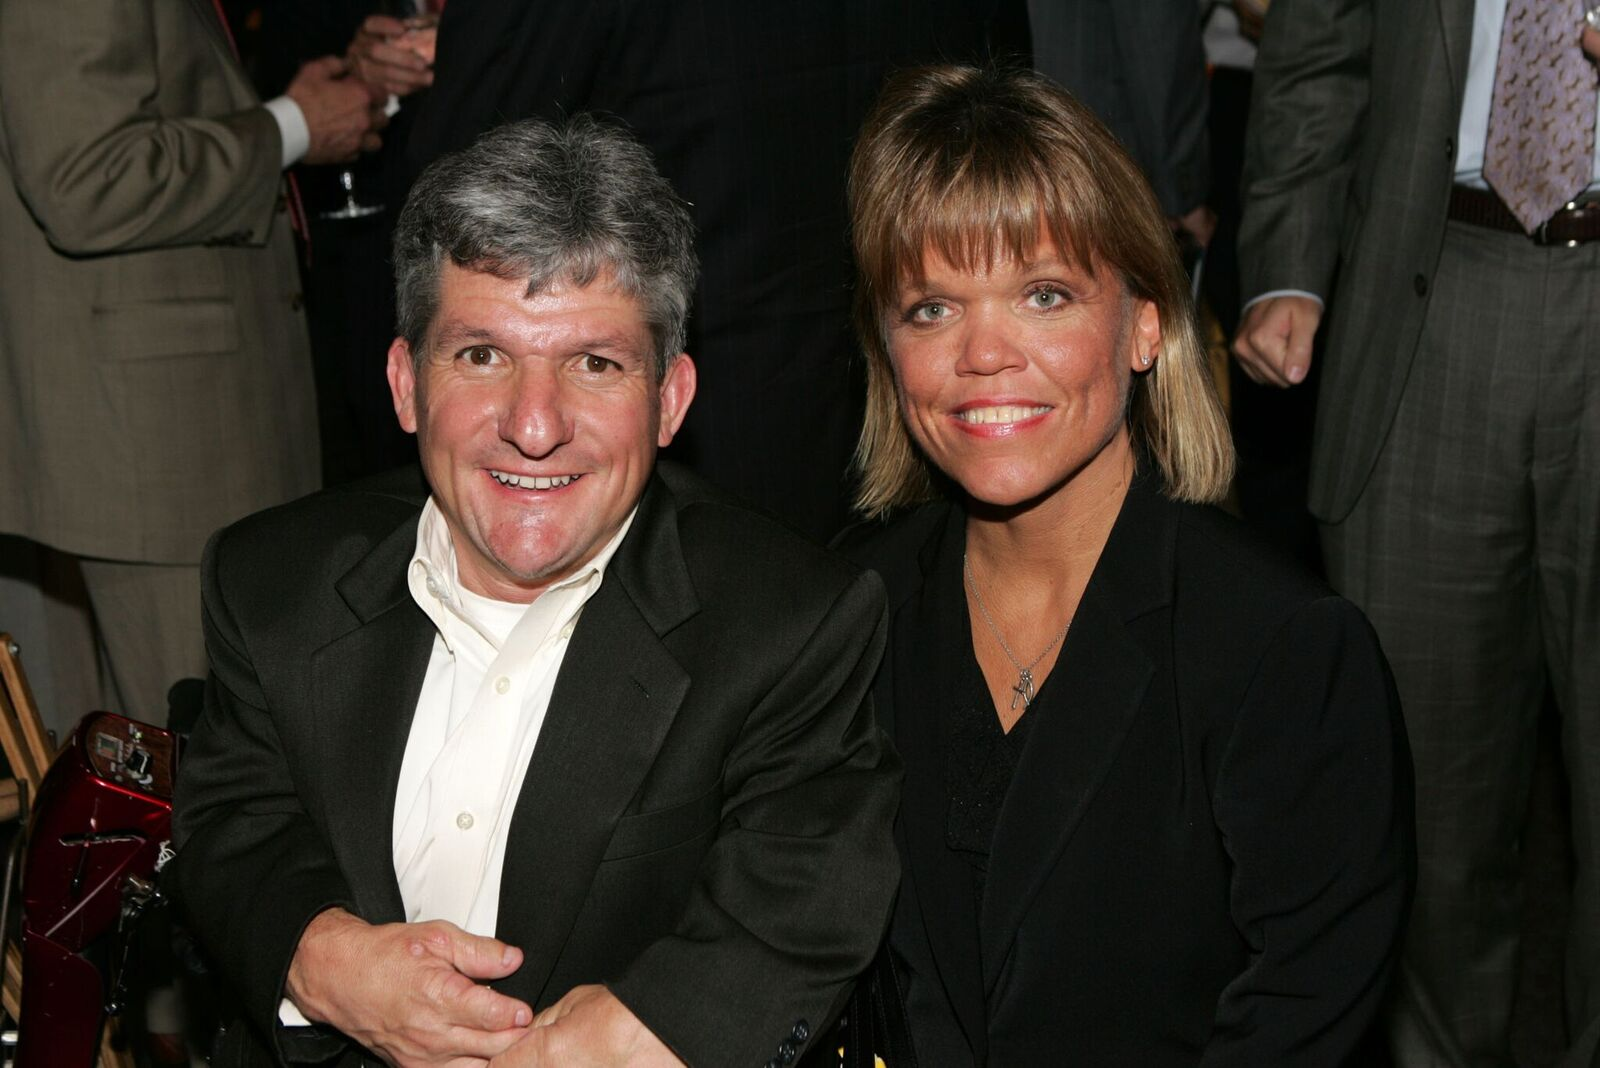 Matt and Amy Roloff attend the Discovery Upfront Presentation NY - Talent Images at the Frederick P. Rose Hall on April 23, 2008 in New York City | Photo: Getty Images